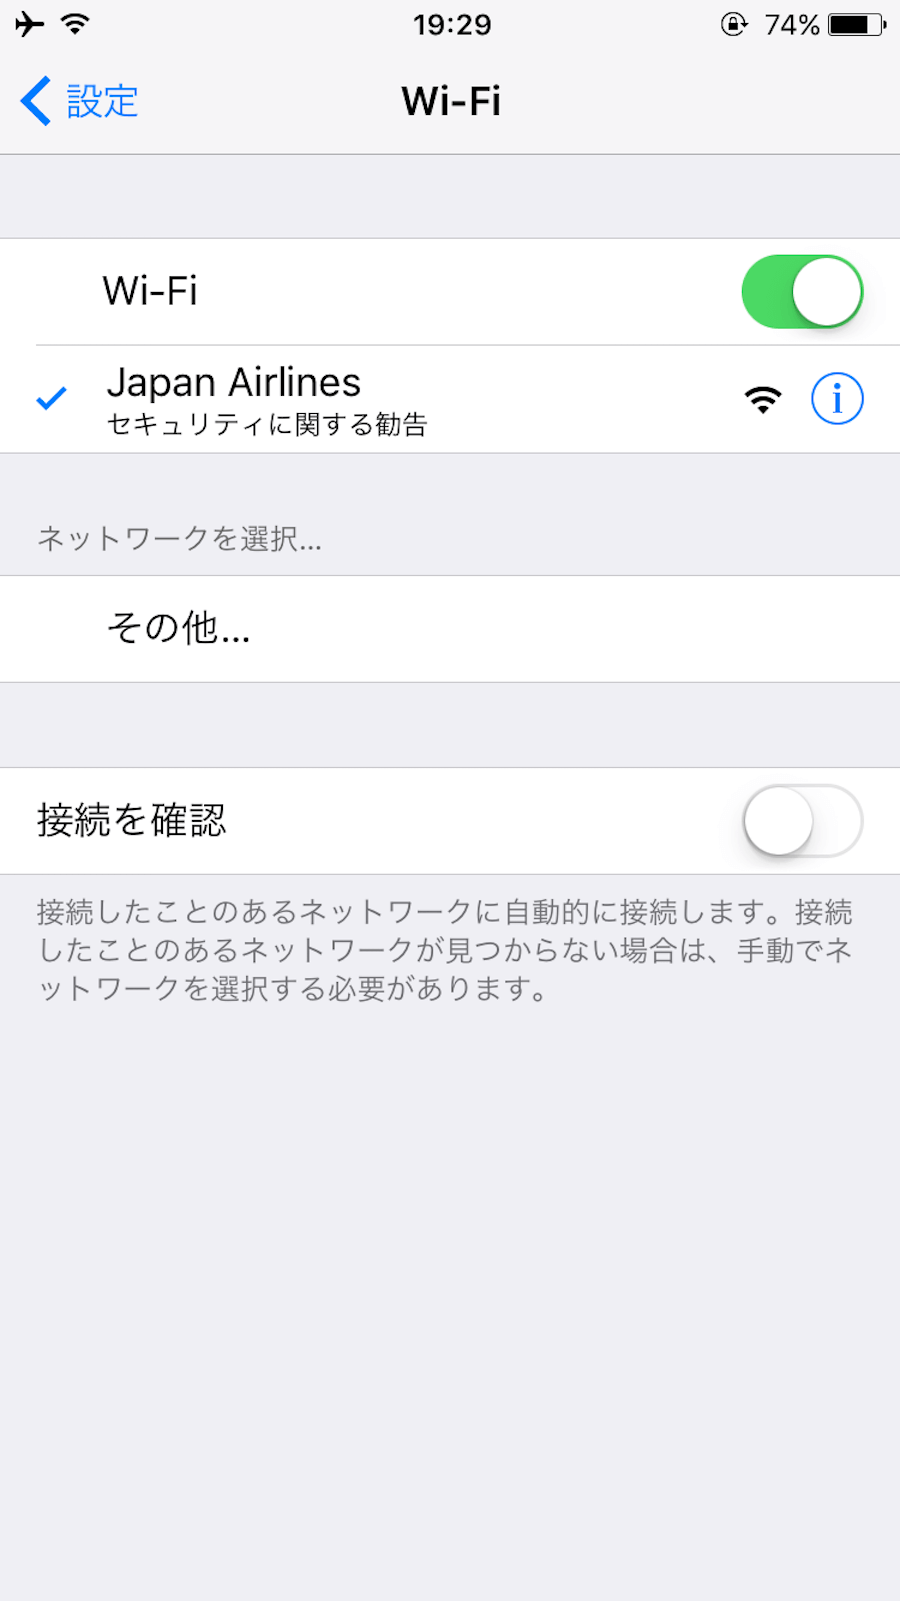 Japan AirlinesのWi-Fiを選択